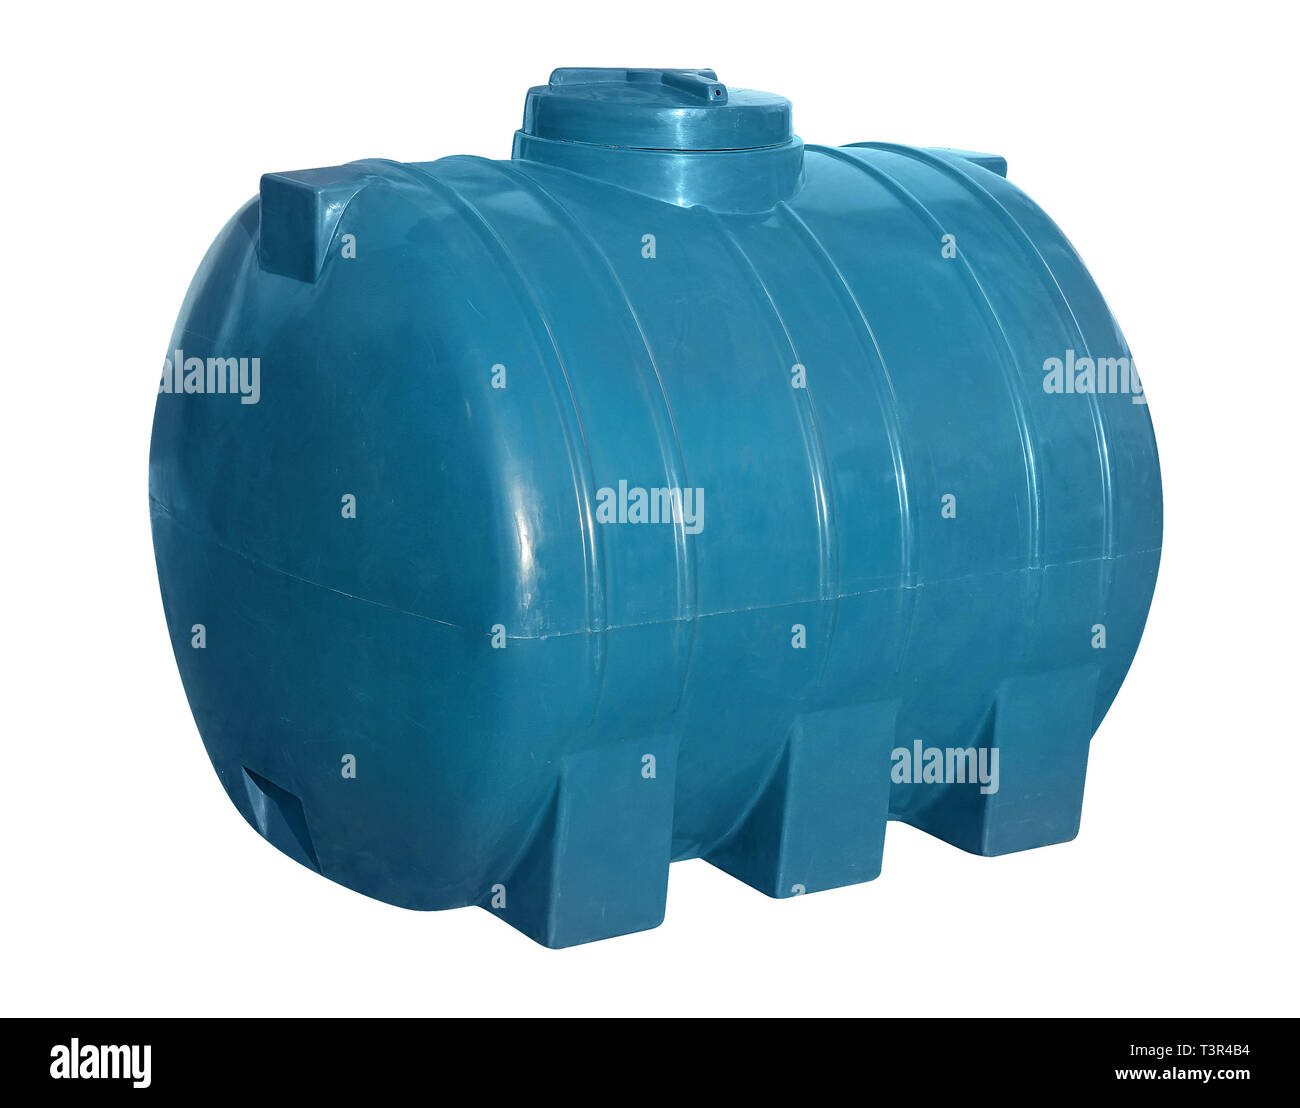 Blue big plastic barrel for water, canister isolated on white background - Stock Image